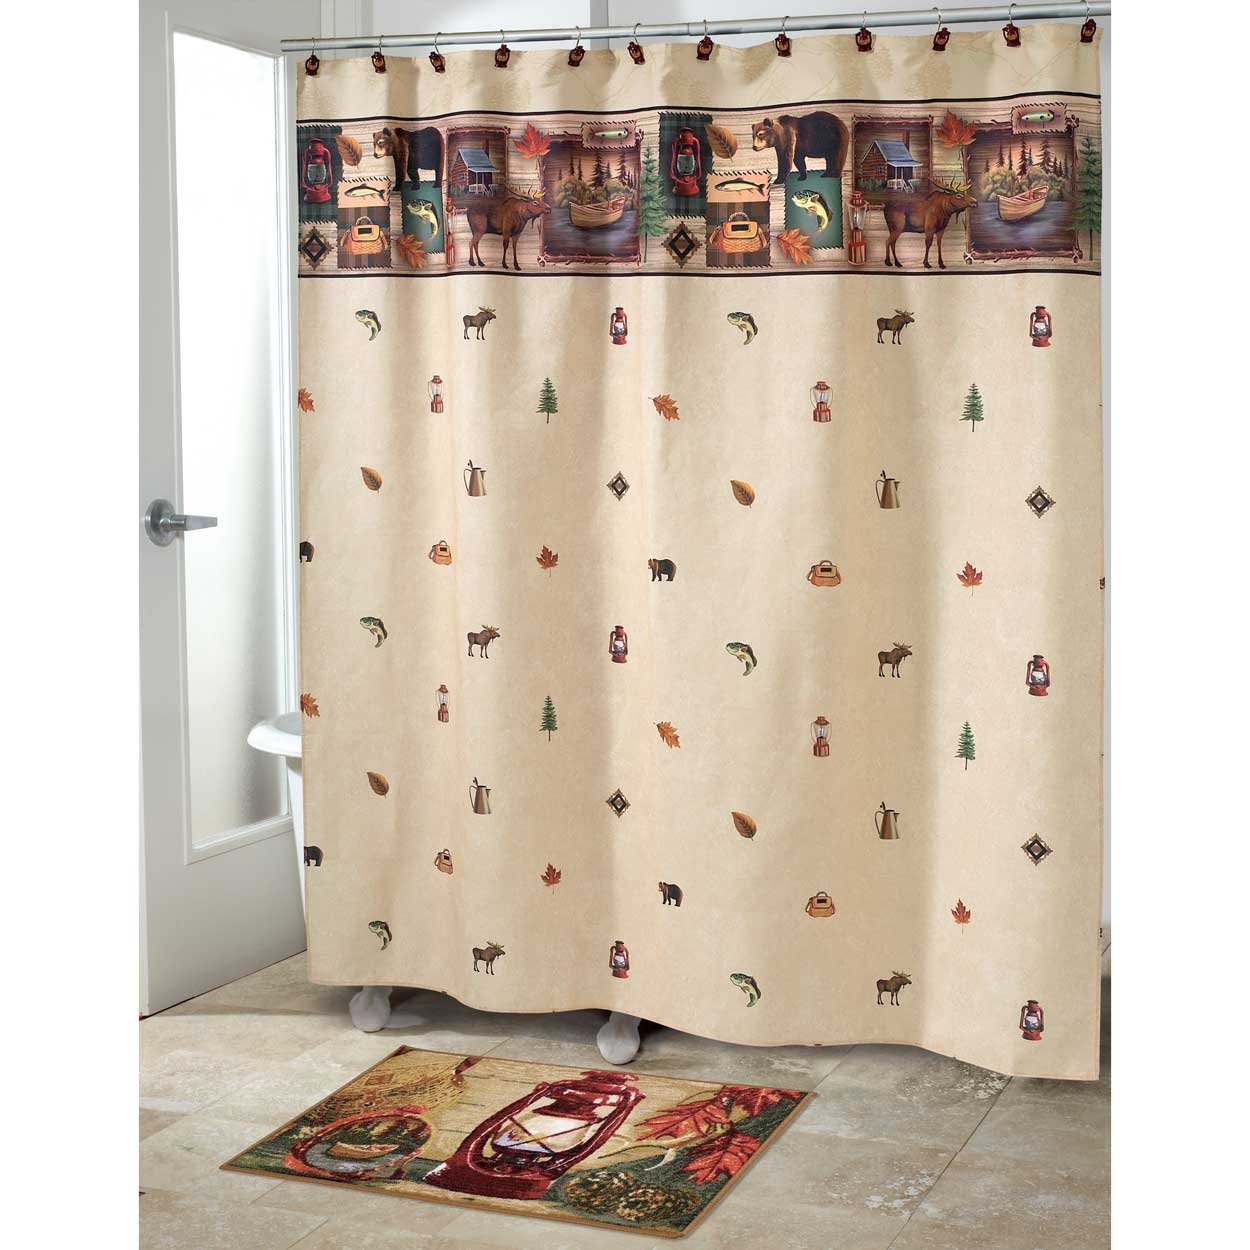 Fish Camp Shower Curtain • Shower Curtains Ideas